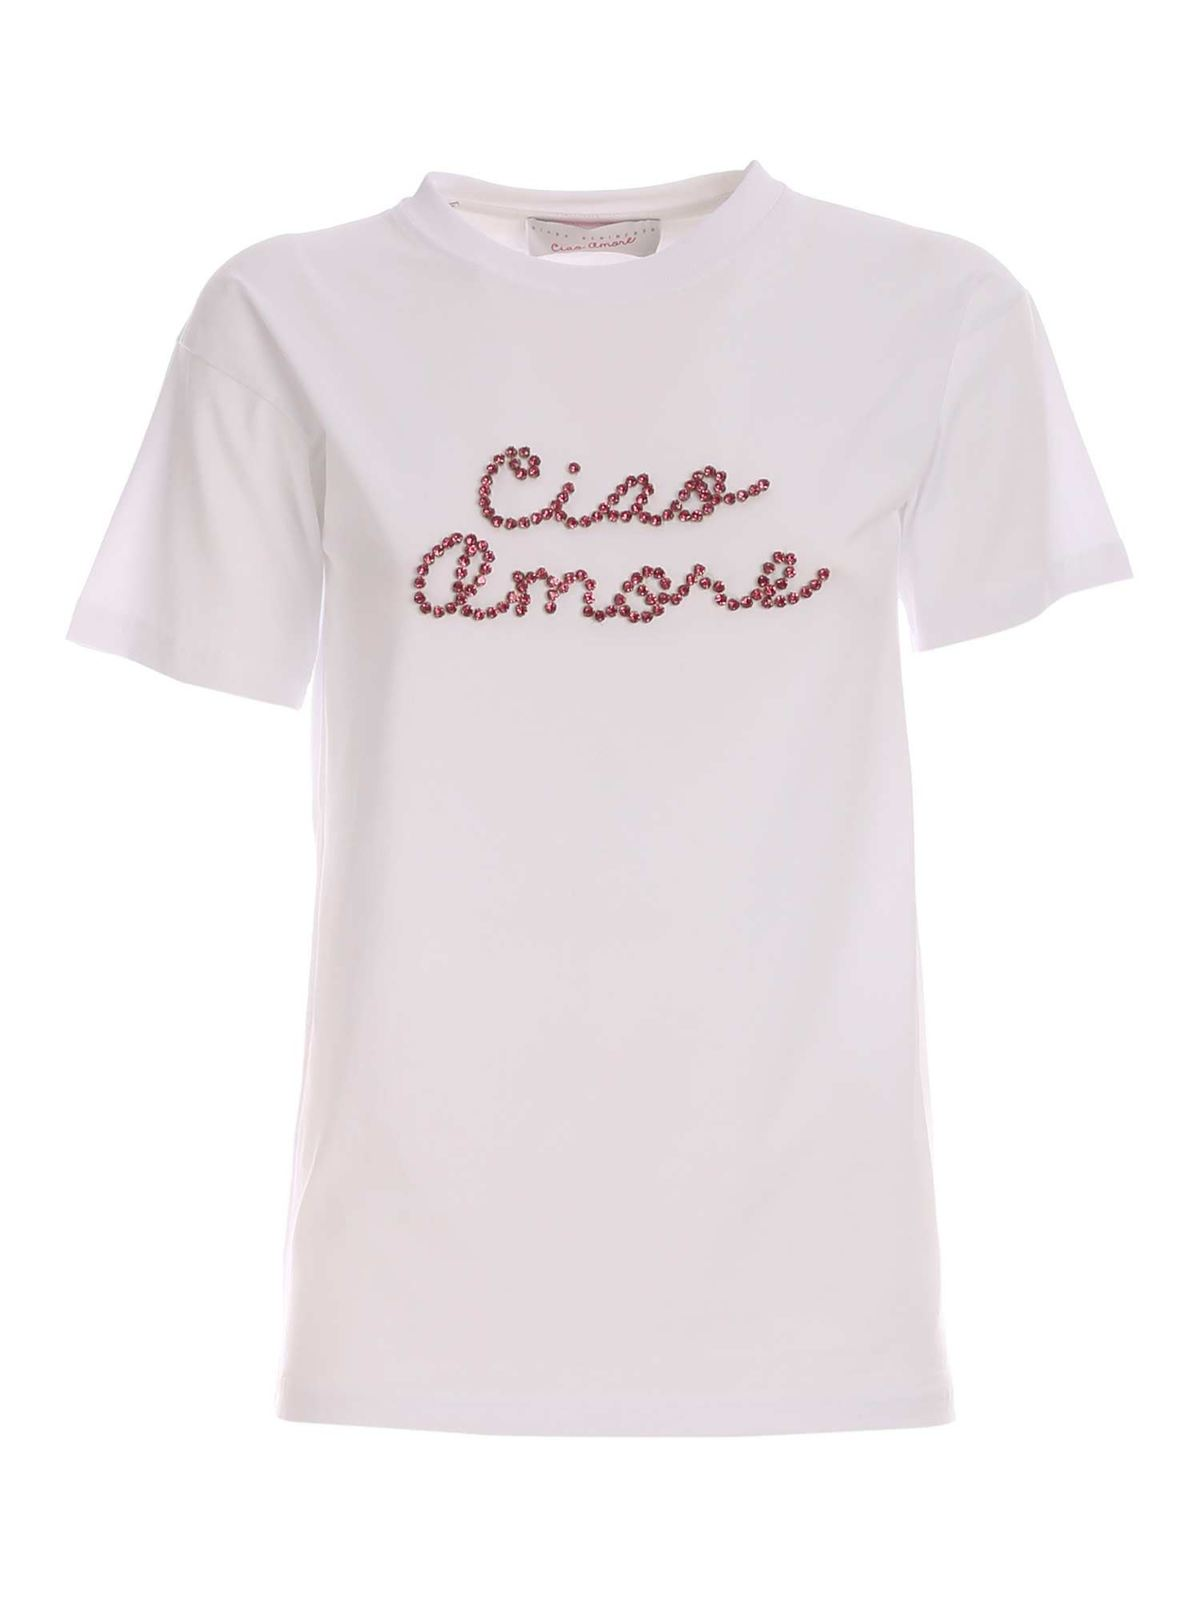 Giada Benincasa LIGHT ROSE T-SHIRT IN WHITE